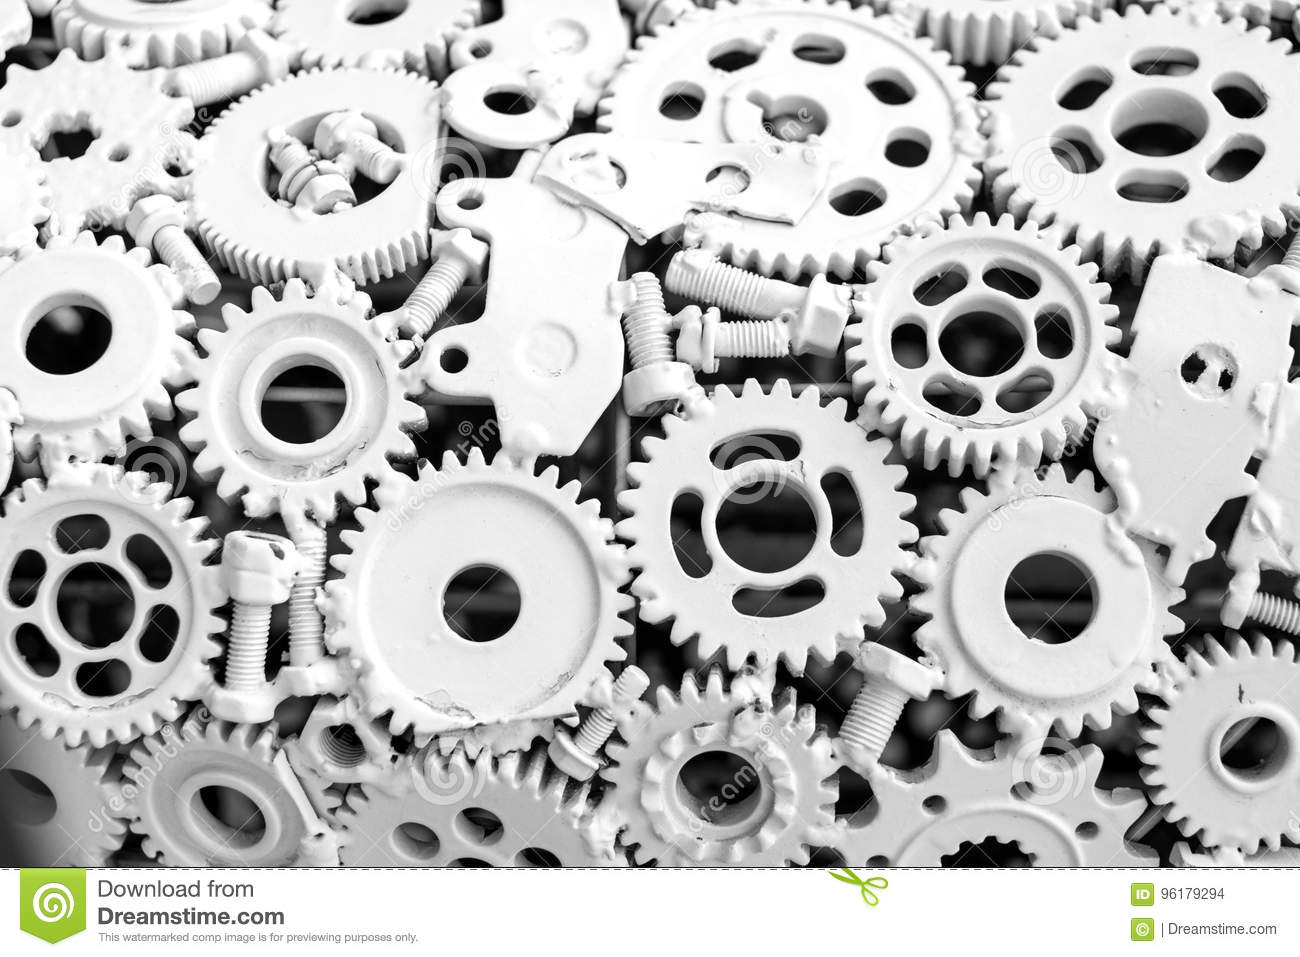 Handicraft Metal Artwork From Used Spare Parts Stock Photo Image Of Artwork Industrial 96179294